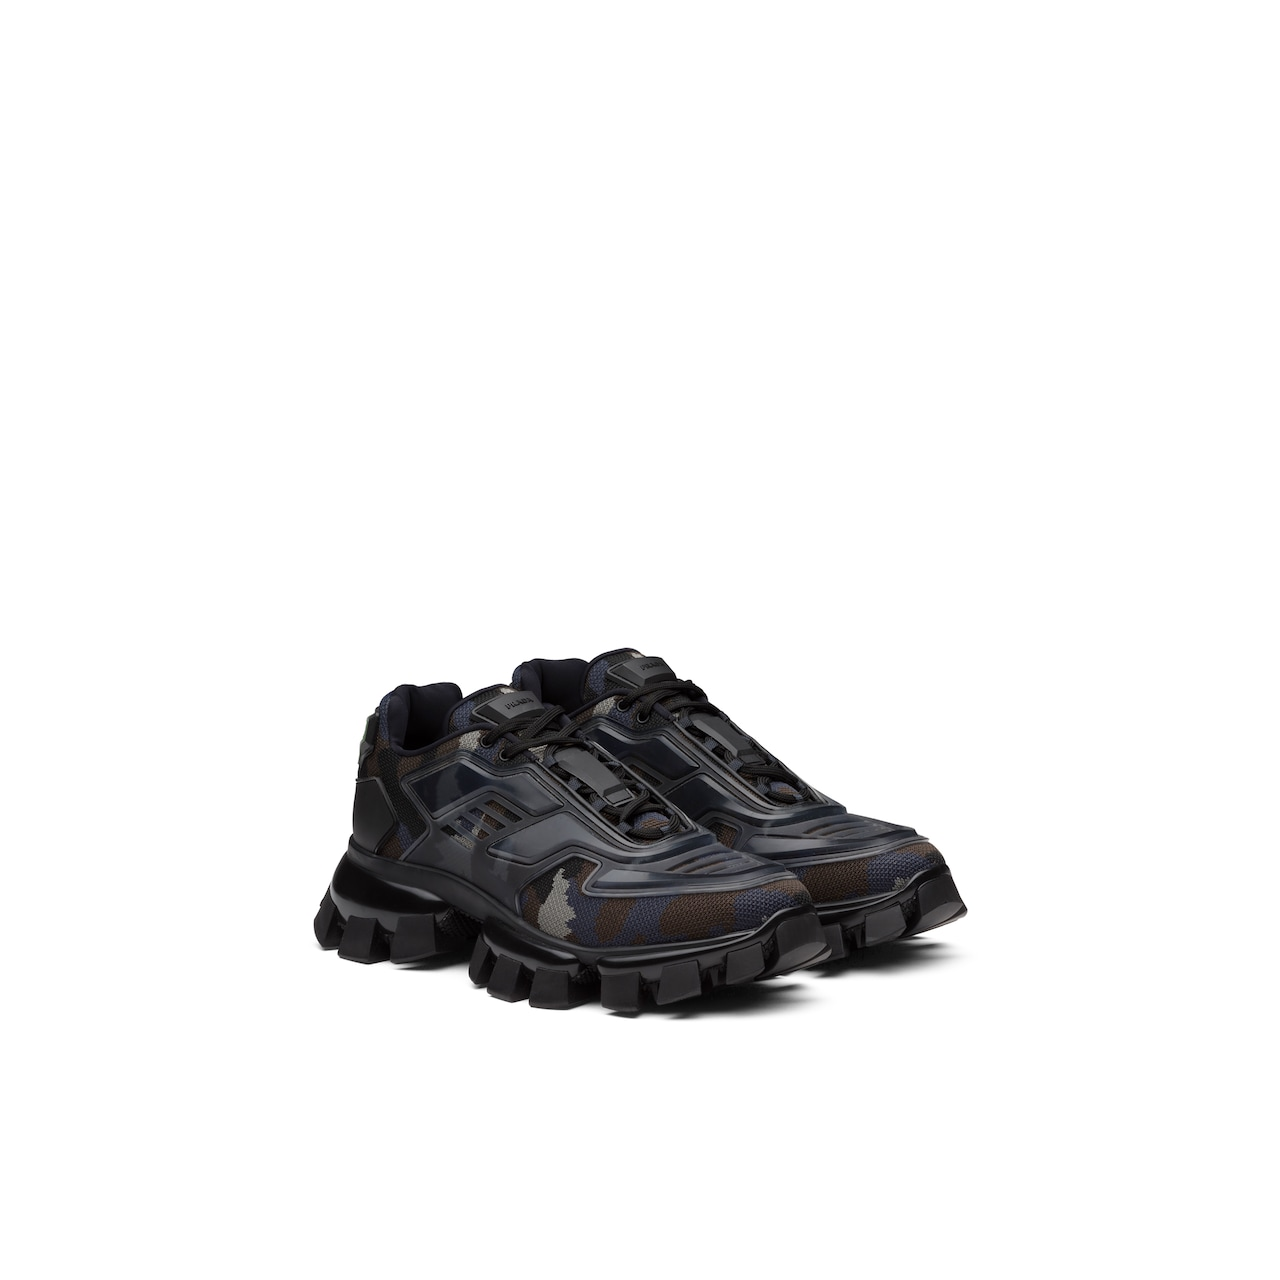 Prada Cloudbust Thunder sneakers 1